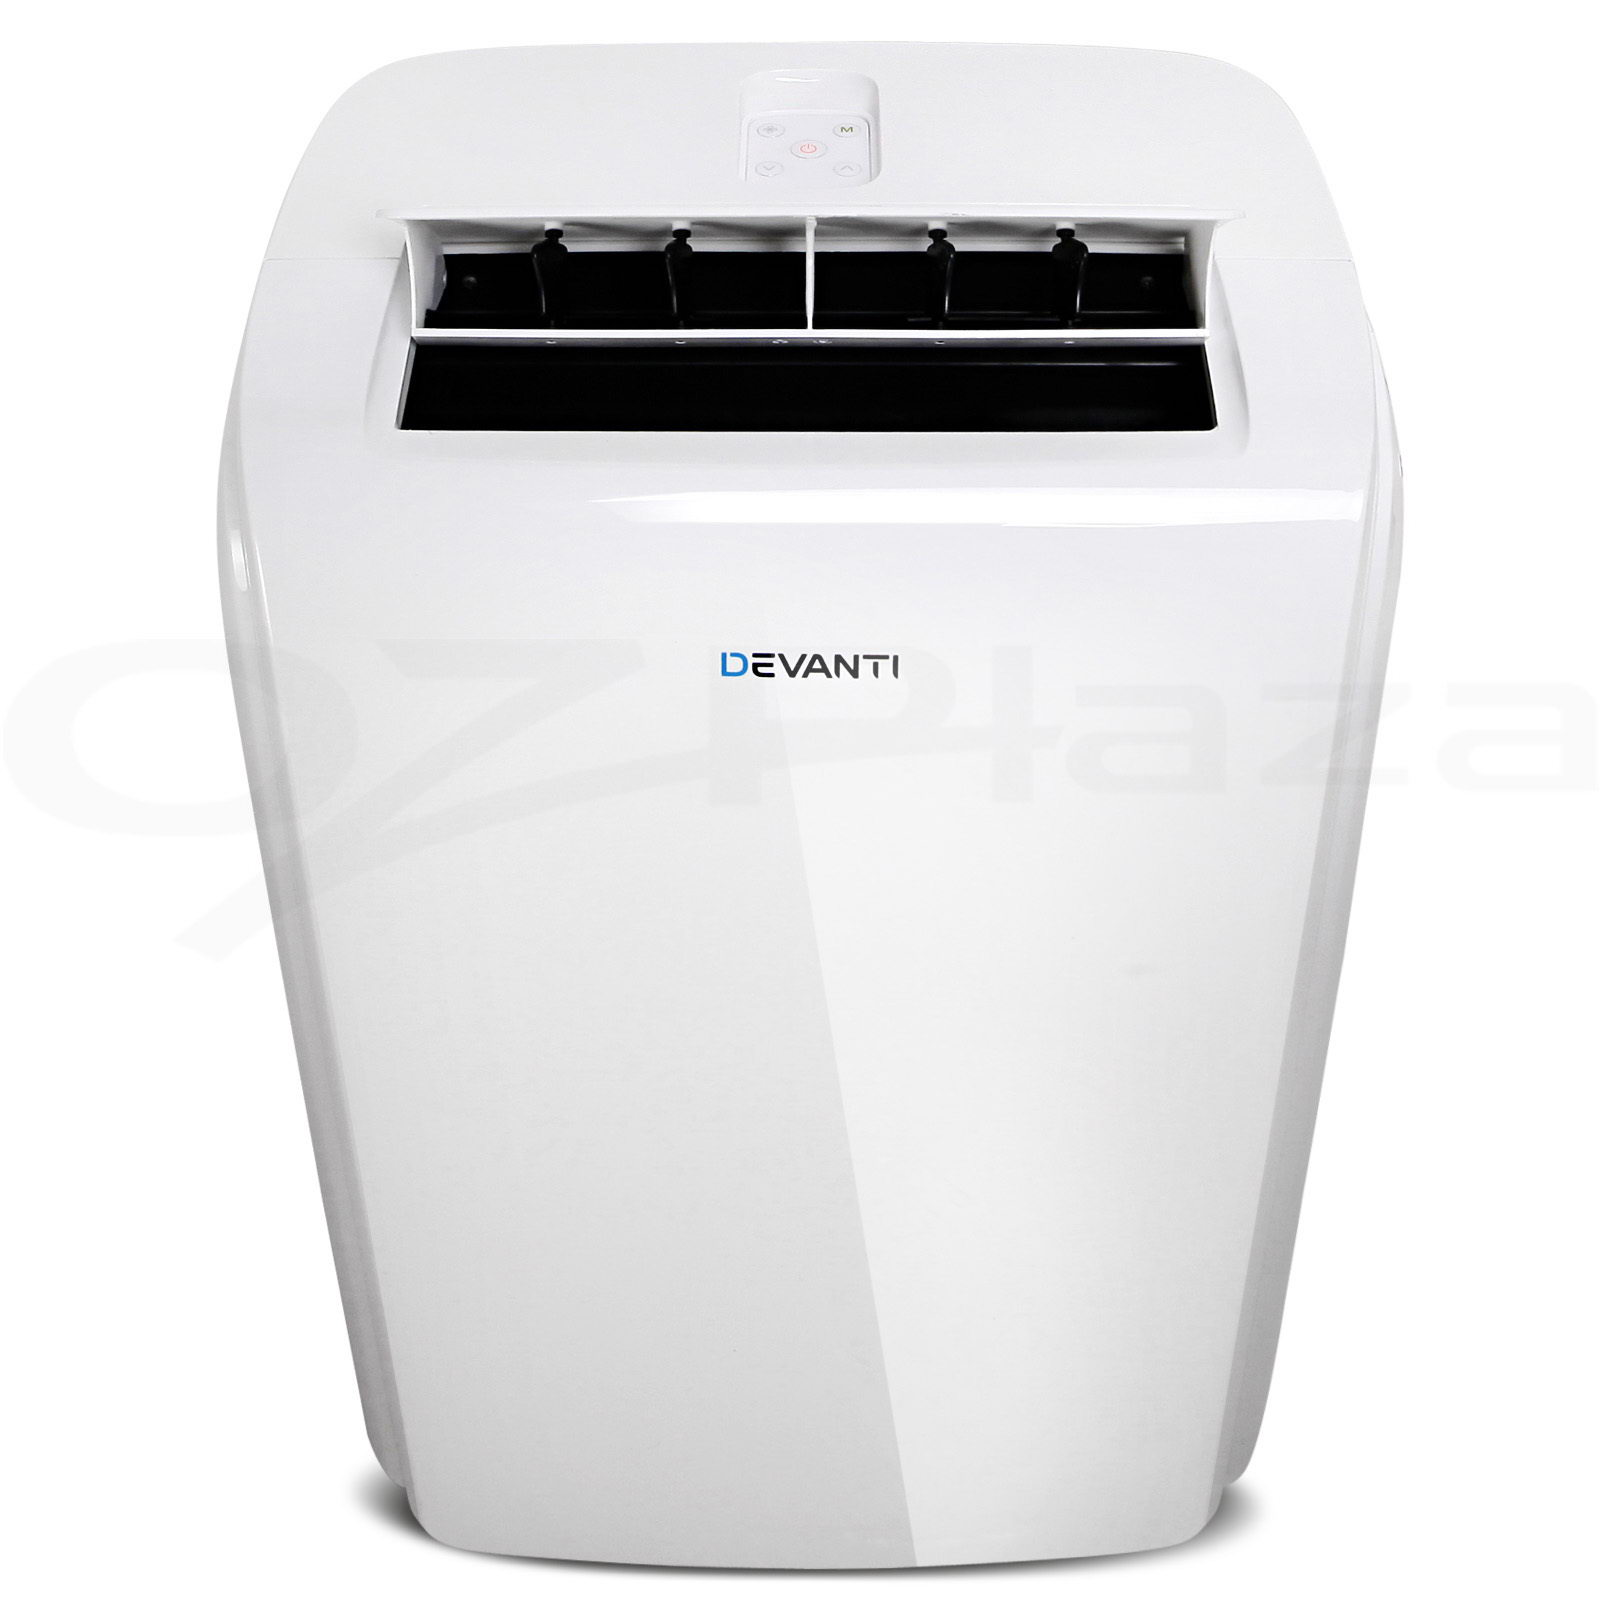 Home Appliances > Heating Cooling & Air > Air Conditioners #2A6BA1